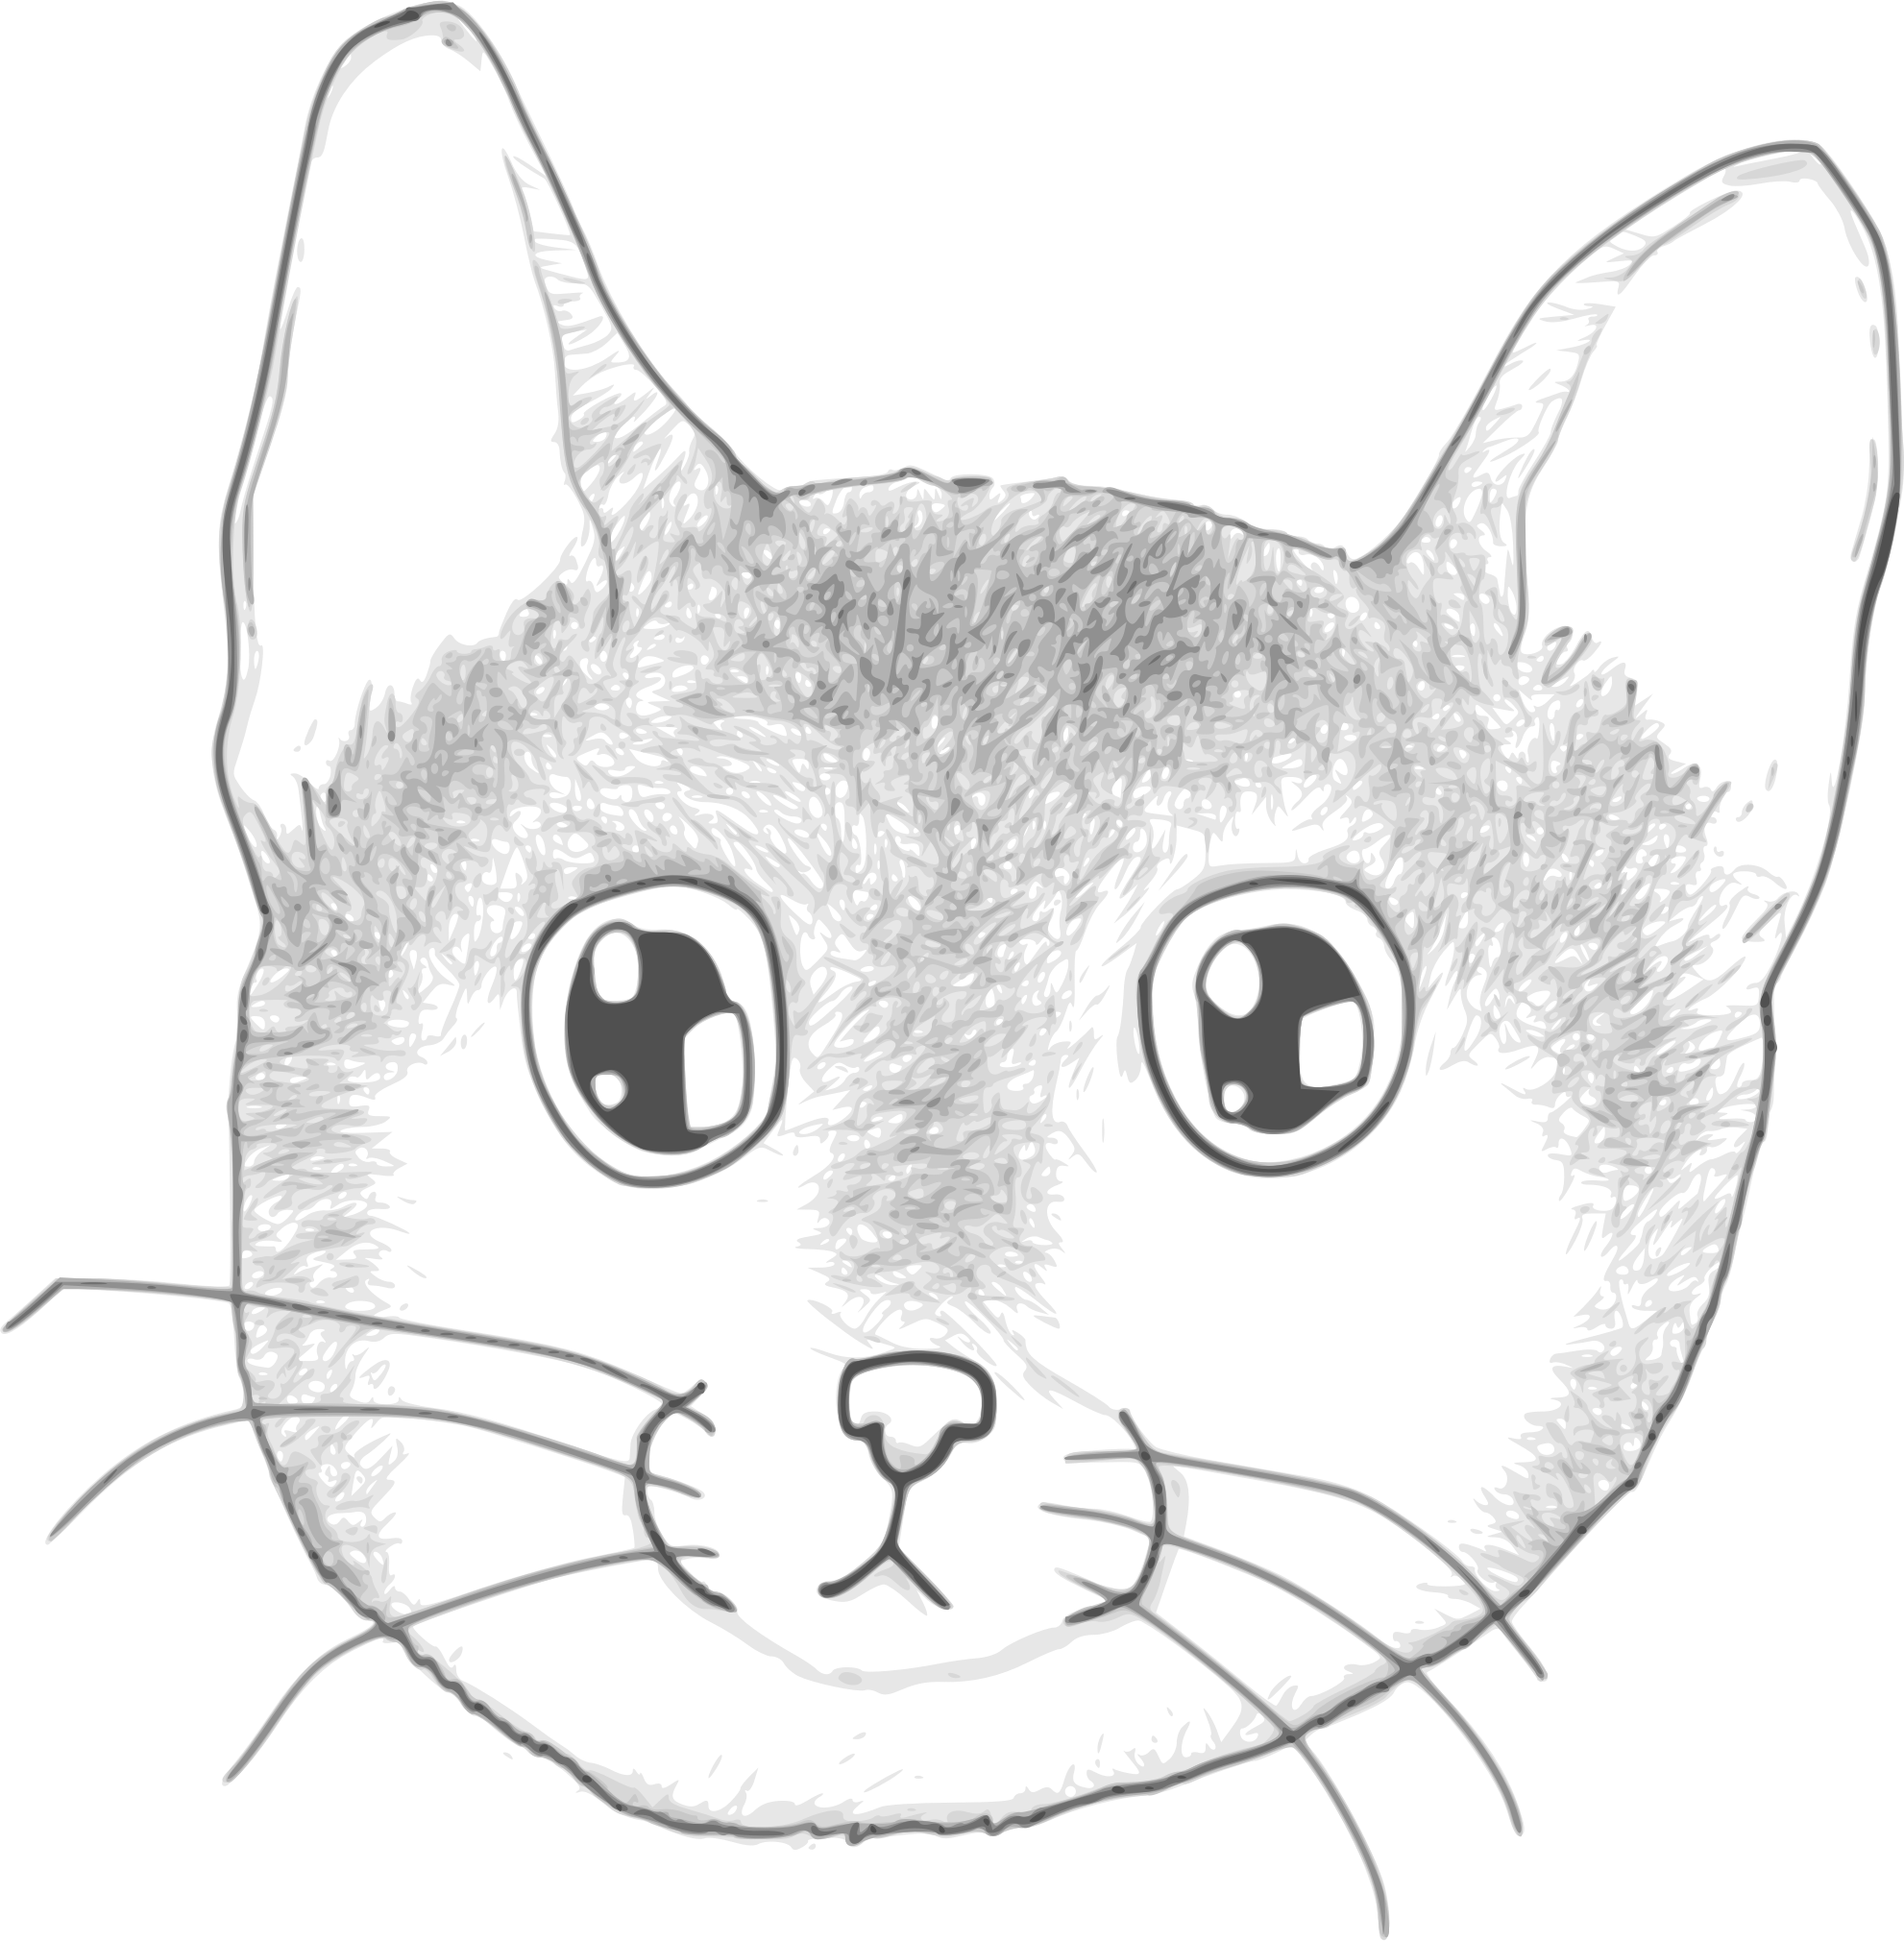 A stripped kitten face by Child_of_Light